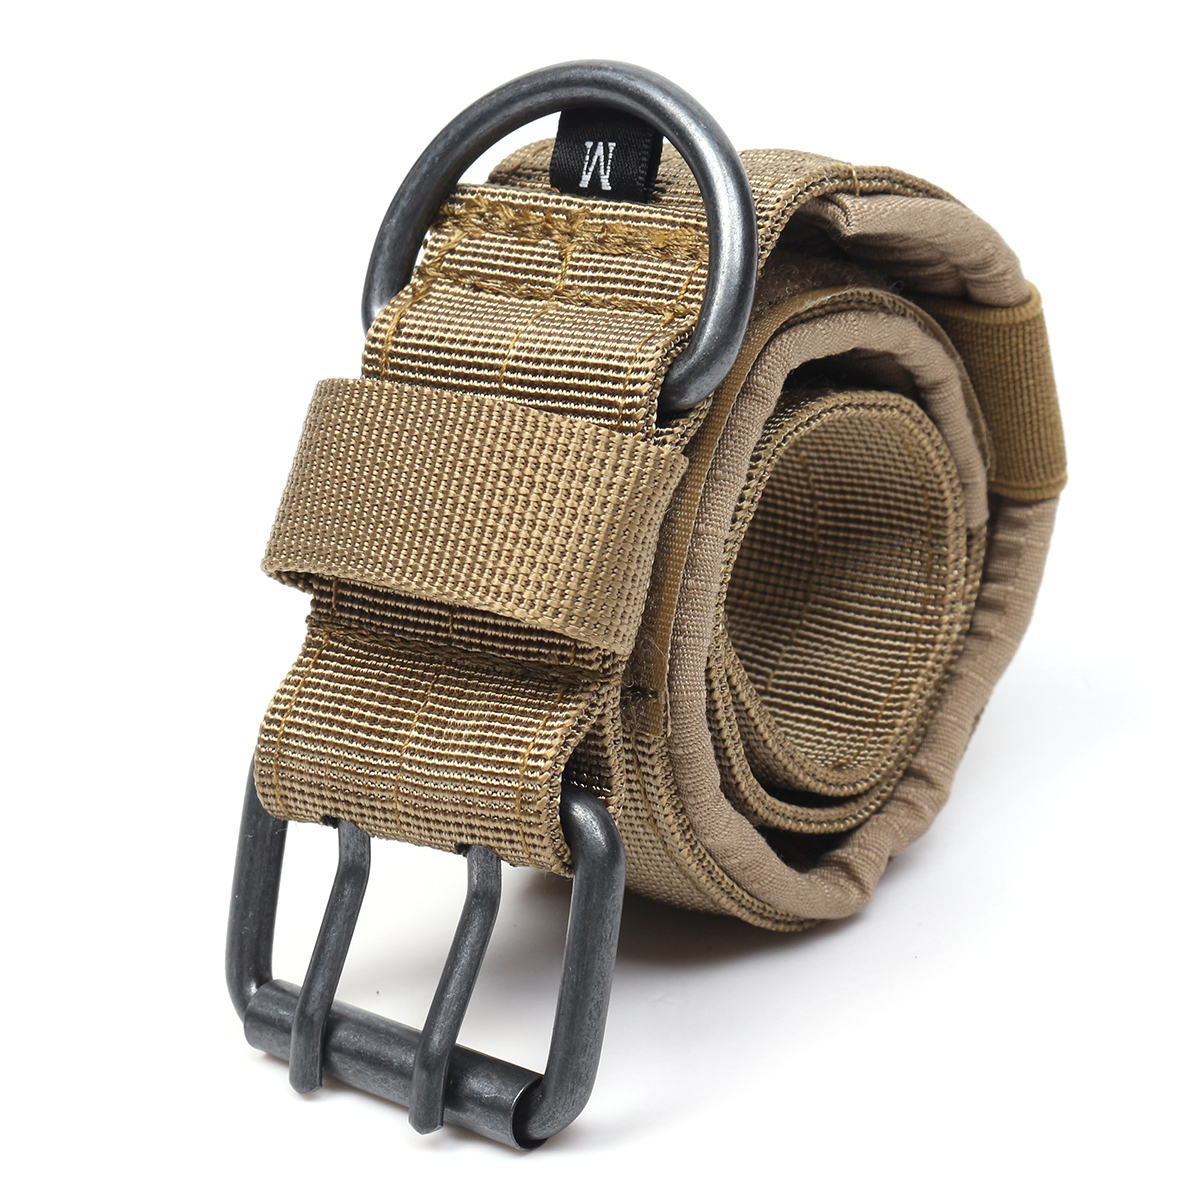 Adjustable Training Dog Collar Nylon Tactical Dog Collar Military With Metal D Ring Buckle